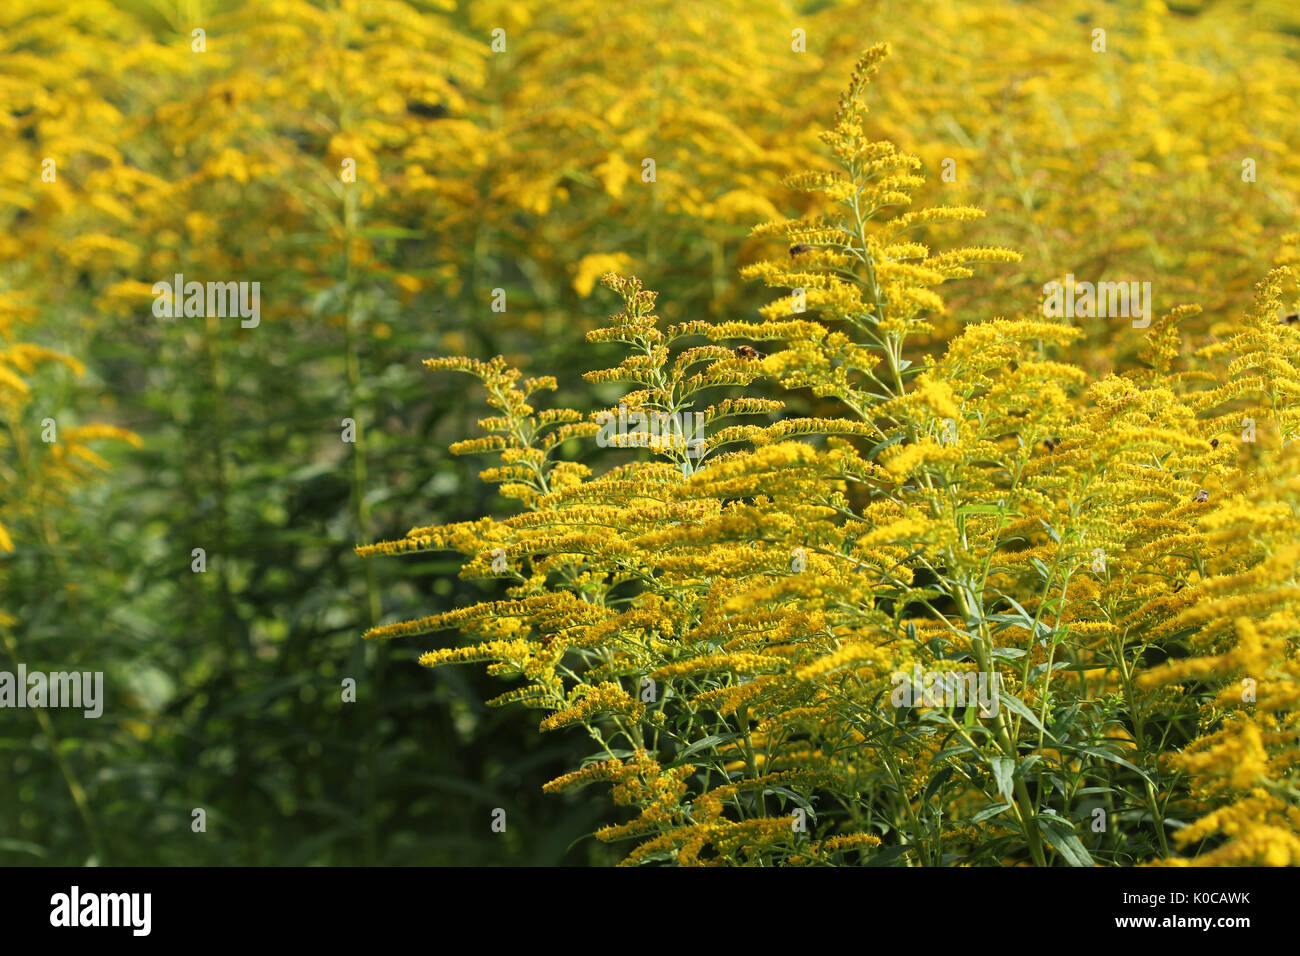 Blooming goldenrod. Solidago, or goldenrods, is a genus of flowering plants in the aster family, Asteraceae - Stock Image